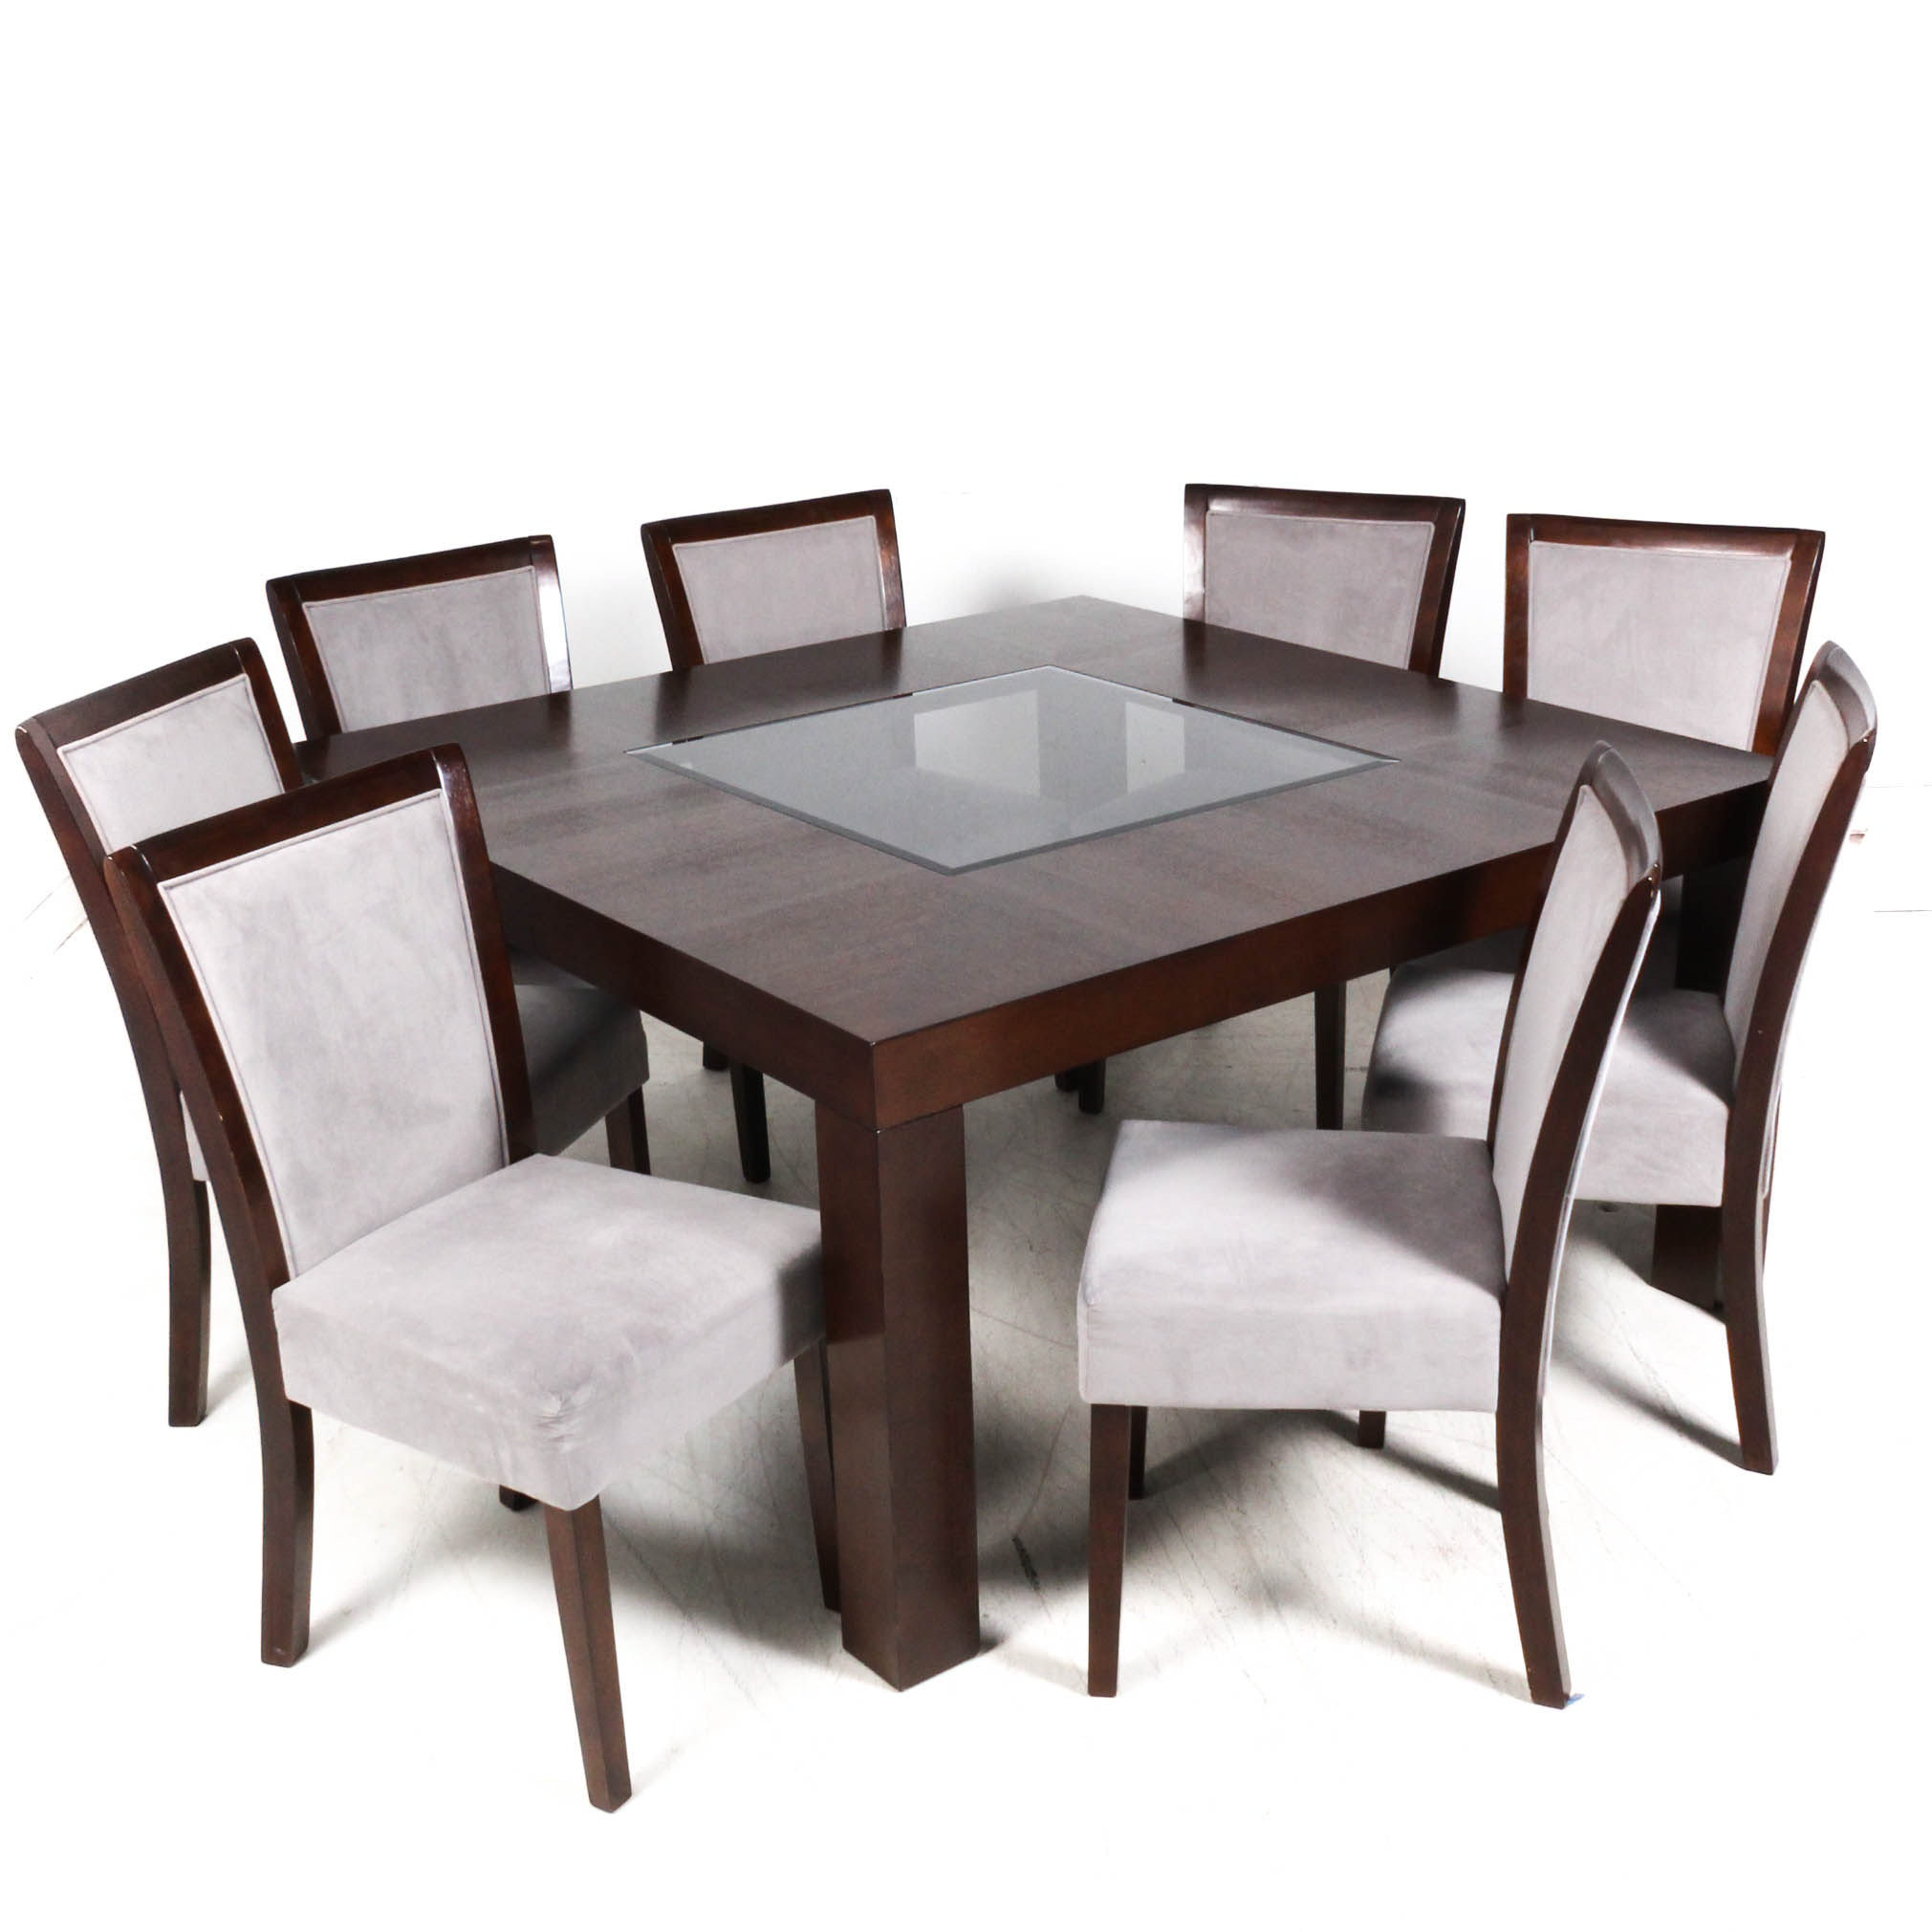 Wooden Glass Center Dining Table and Chairs